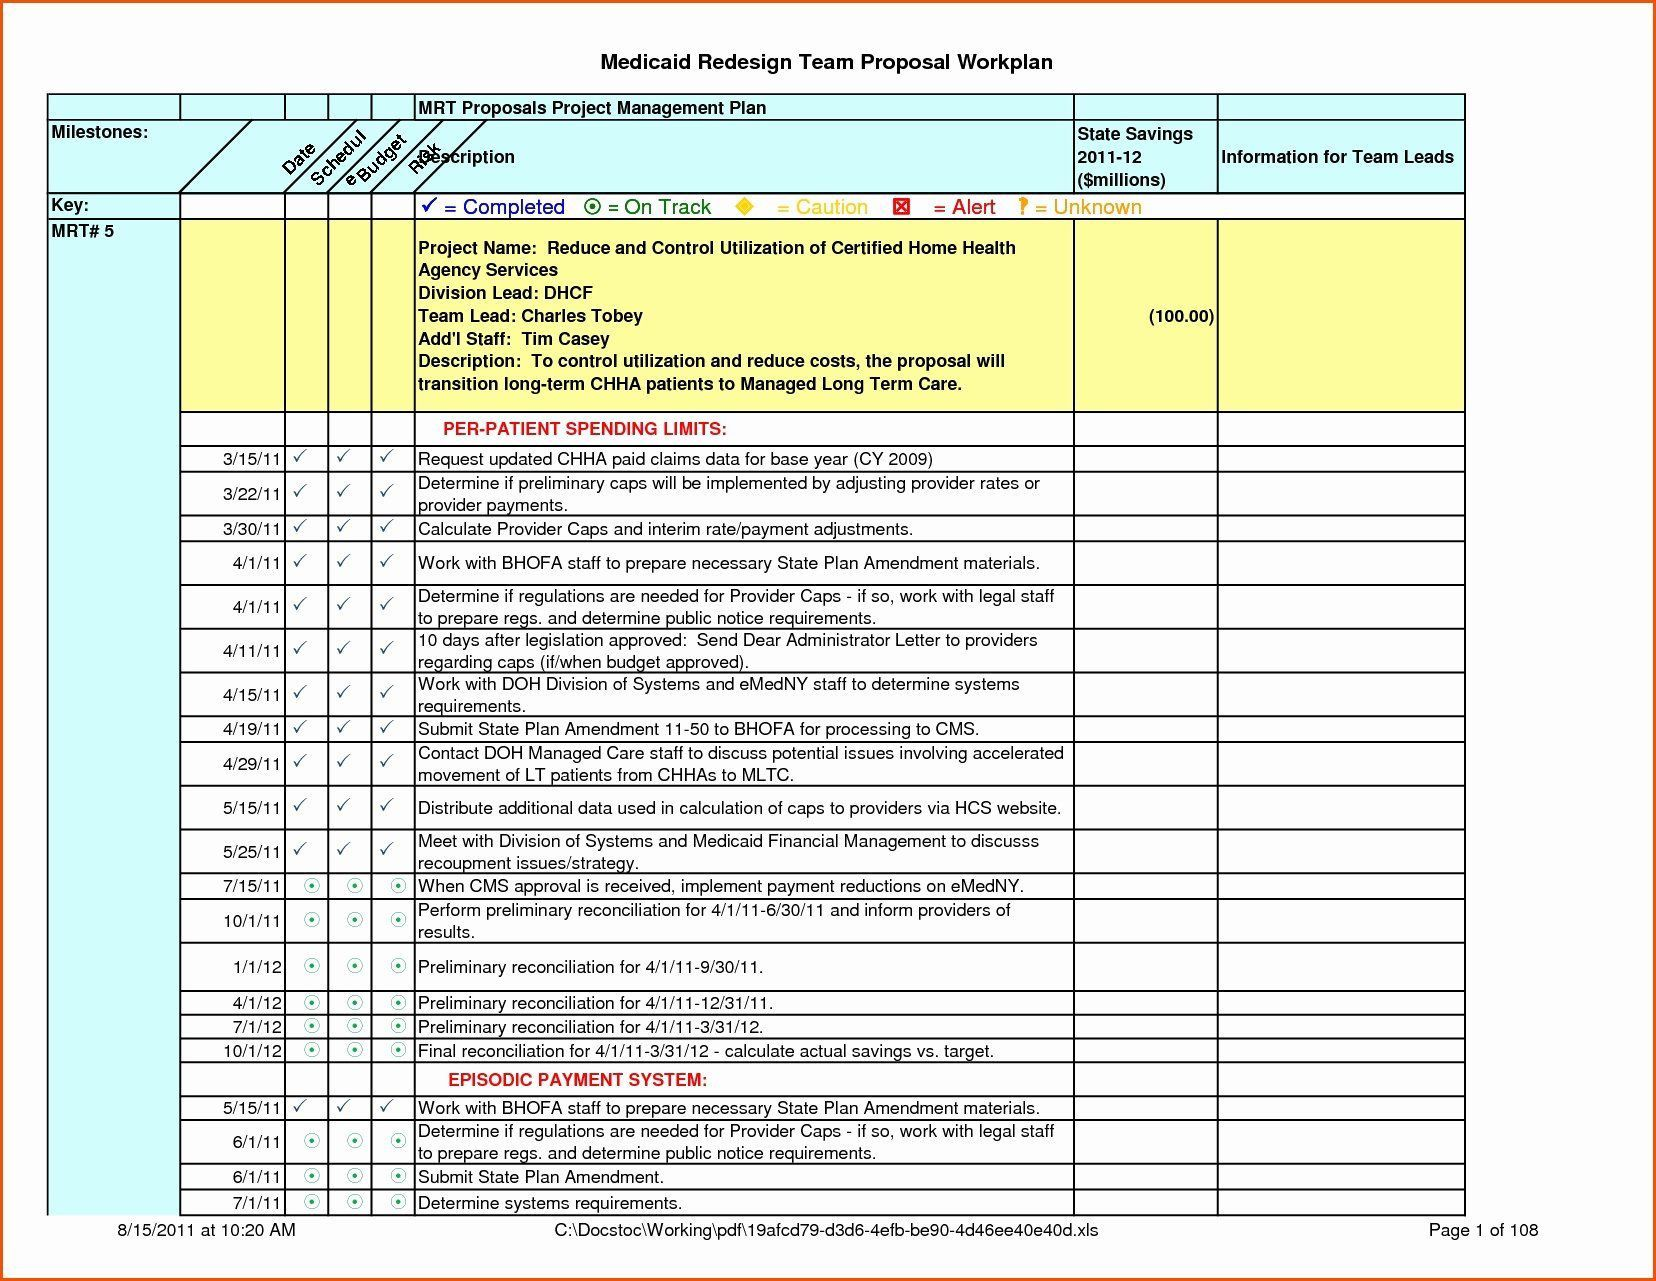 001 Incredible Staffing Plan Template Excel Image  Hospital Project ExampleFull